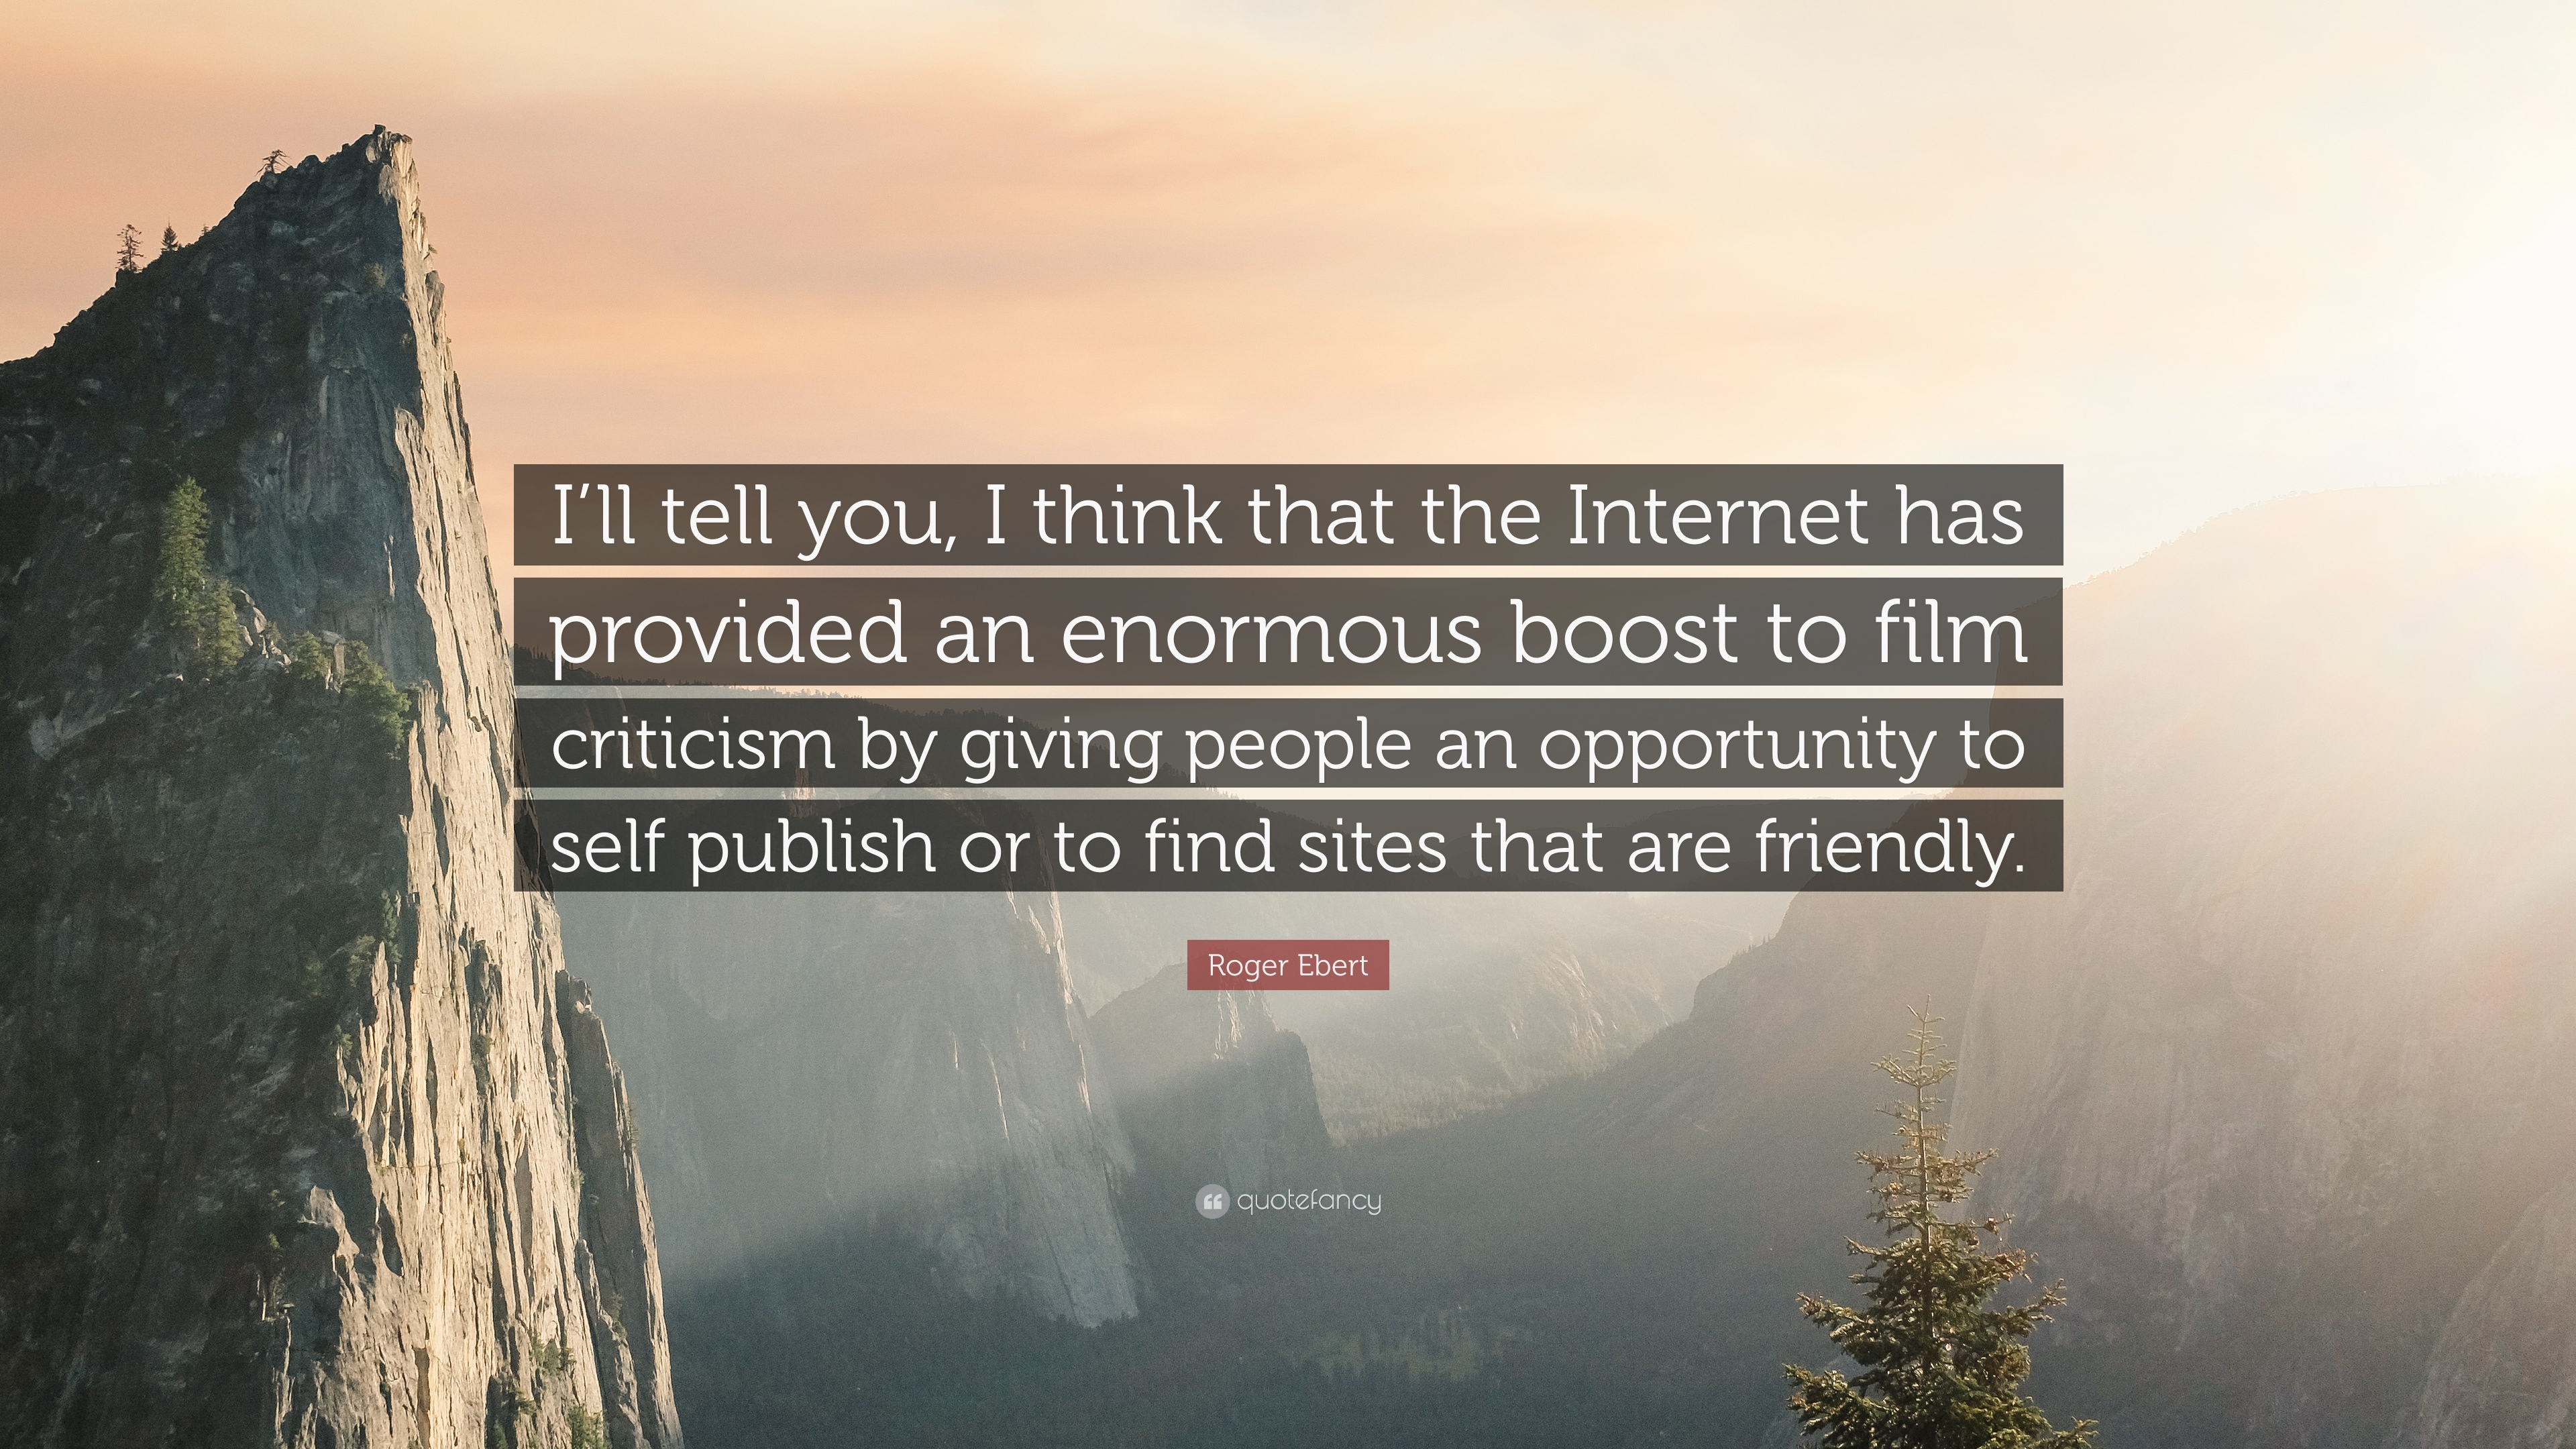 Roger Ebert Quote I Ll Tell You I Think That The Internet Has Provided An Enormous Boost To Film Criticism By Giving People An Opportunit 7 Wallpapers Quotefancy